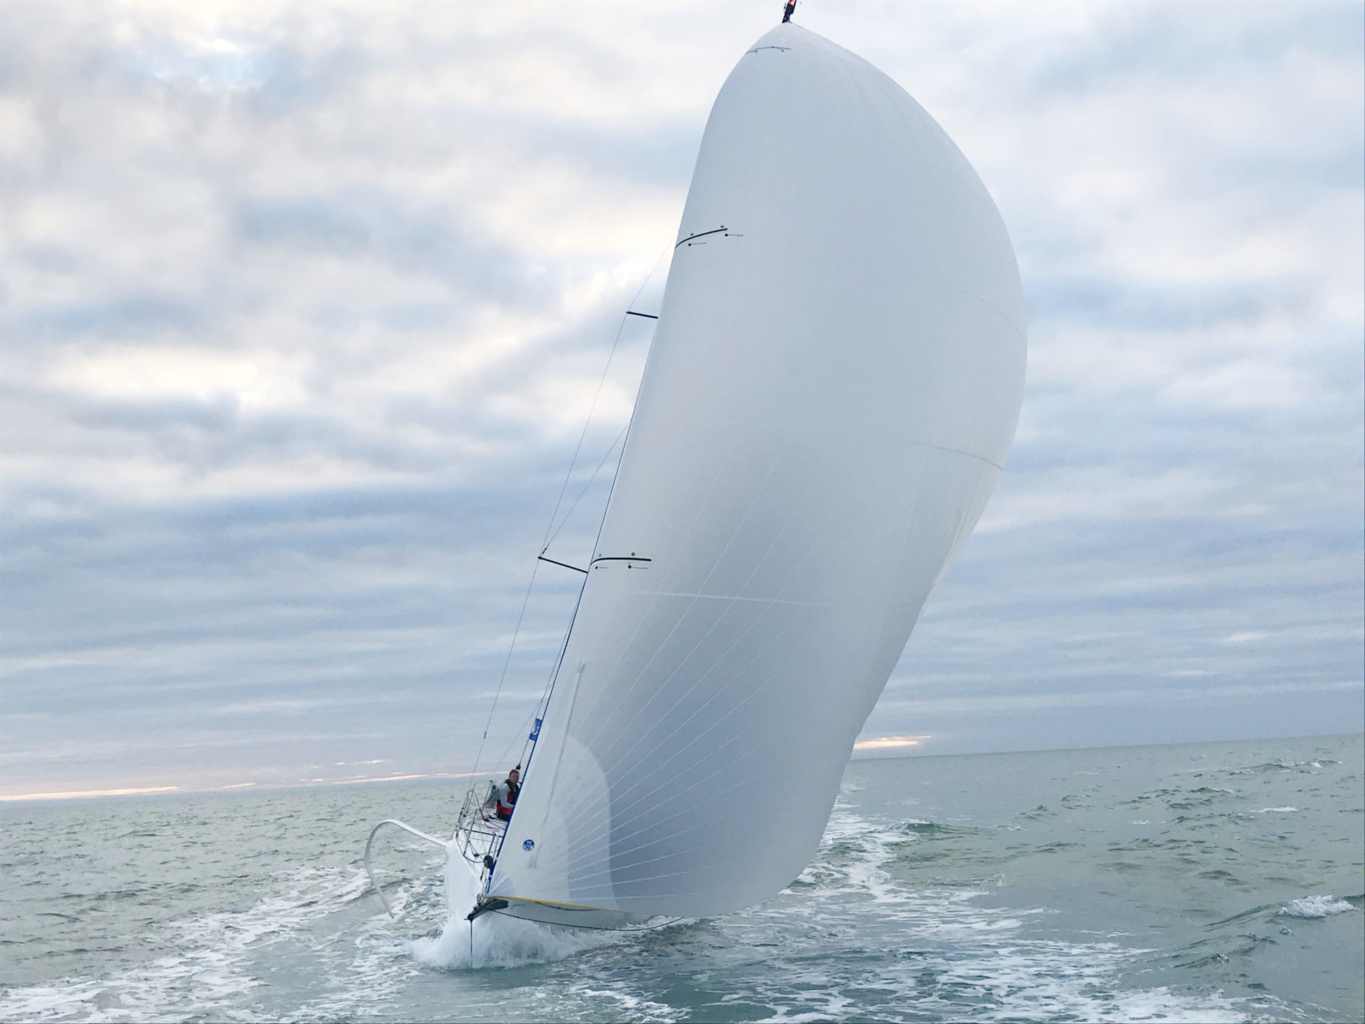 RL Sailing Team 2020 North Sails, Solitaire de Figaro, Ireland